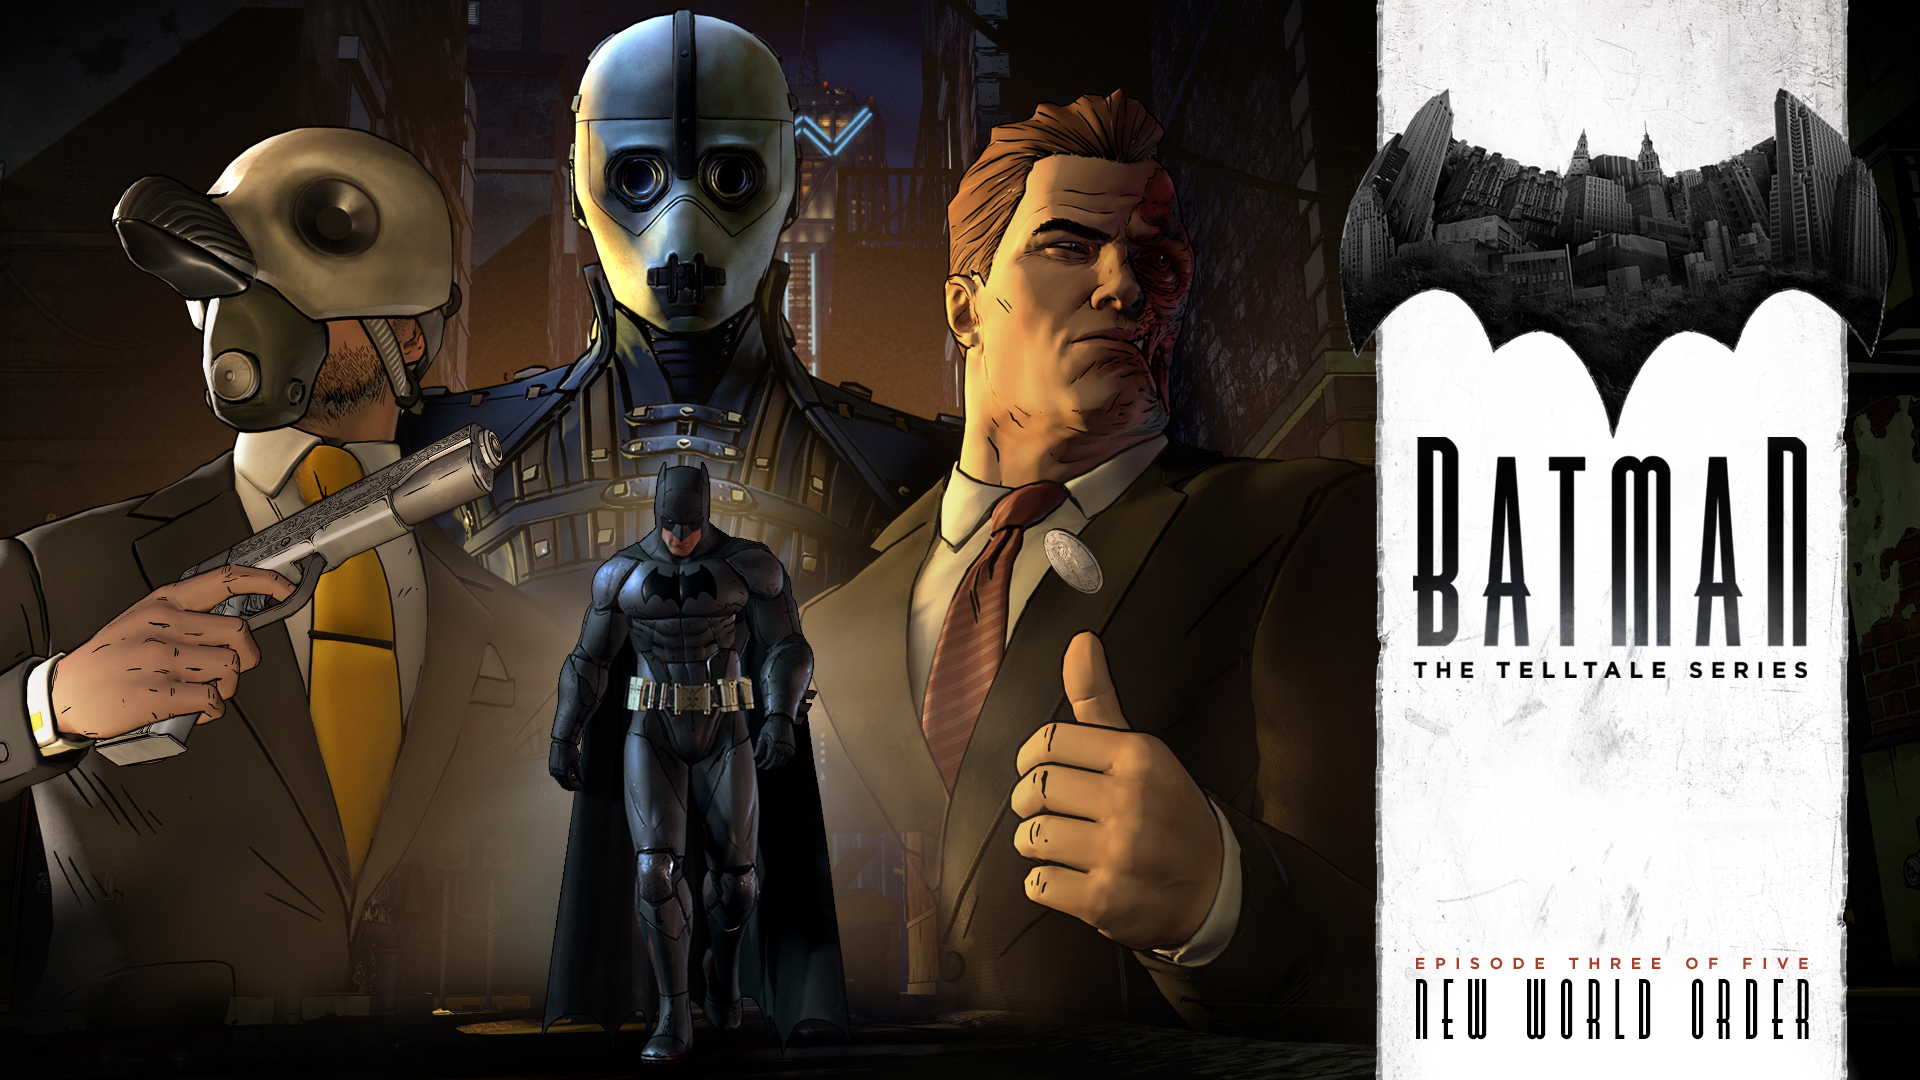 batman-the-telltale-series-new-world-order-artwork-001